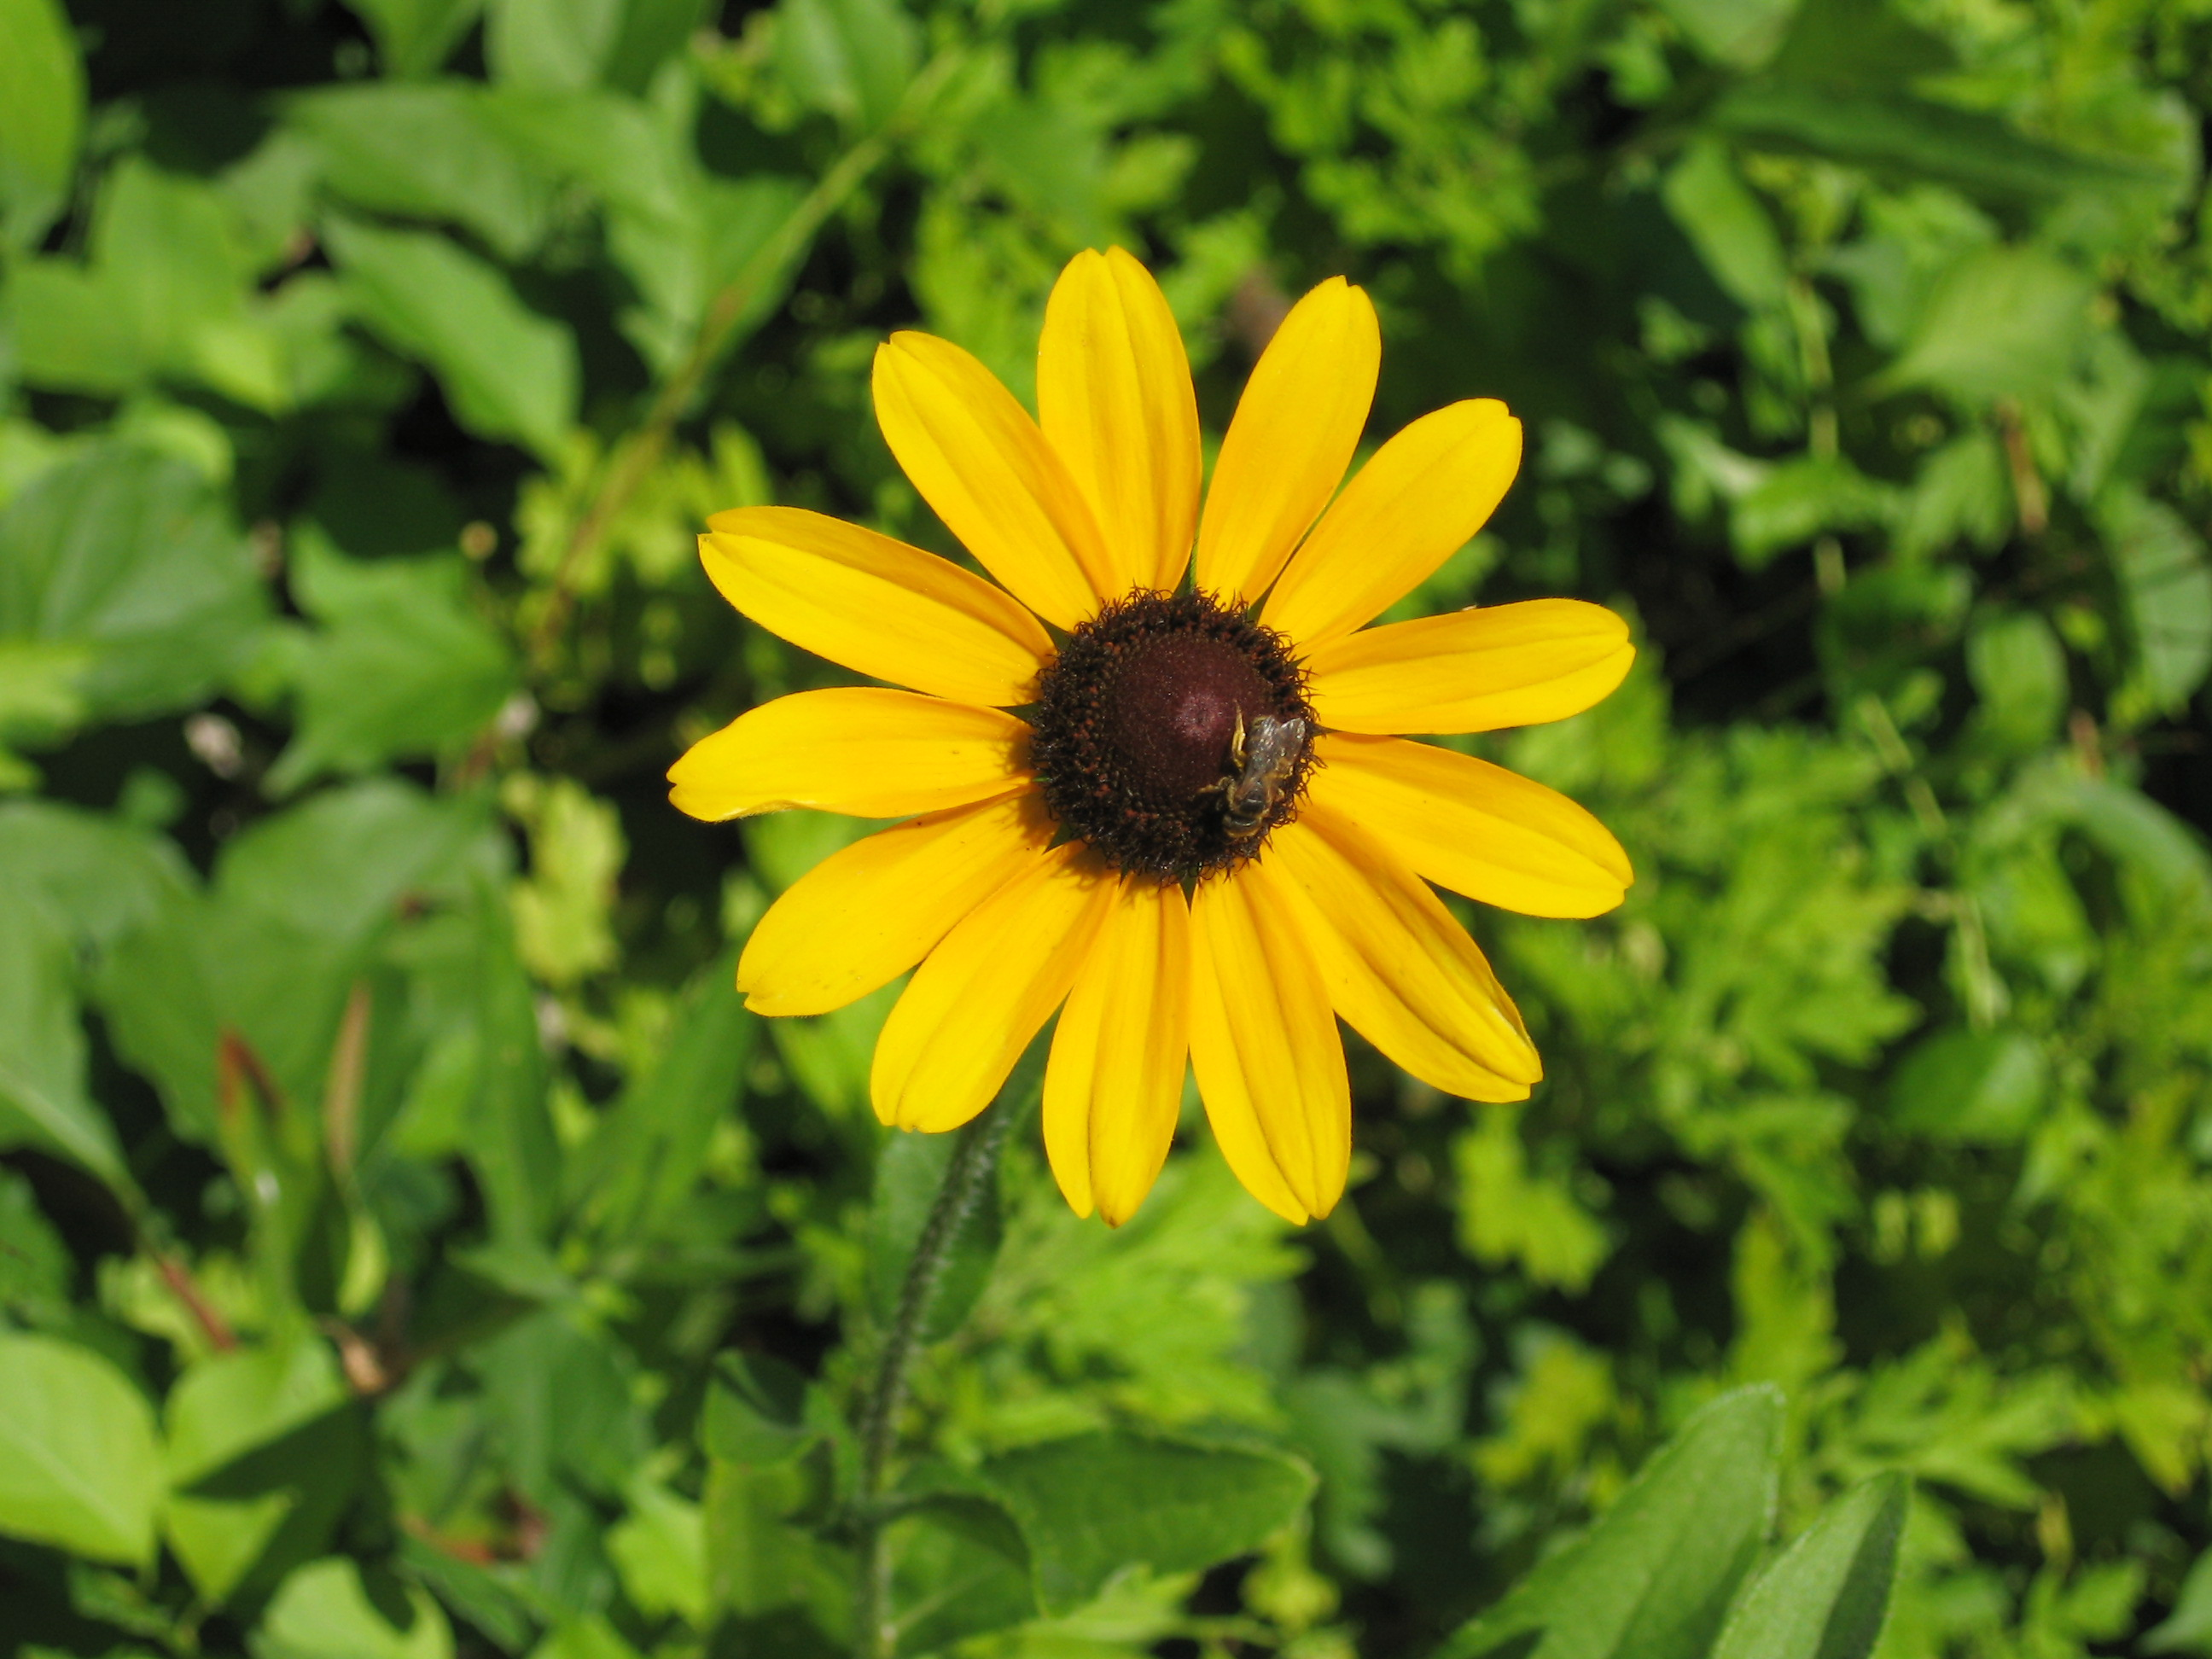 Outdoor flowers that like sun - Black Eyed Susans How To Plant Grow And Care For Black Eyed Susans The Old Farmer S Almanac